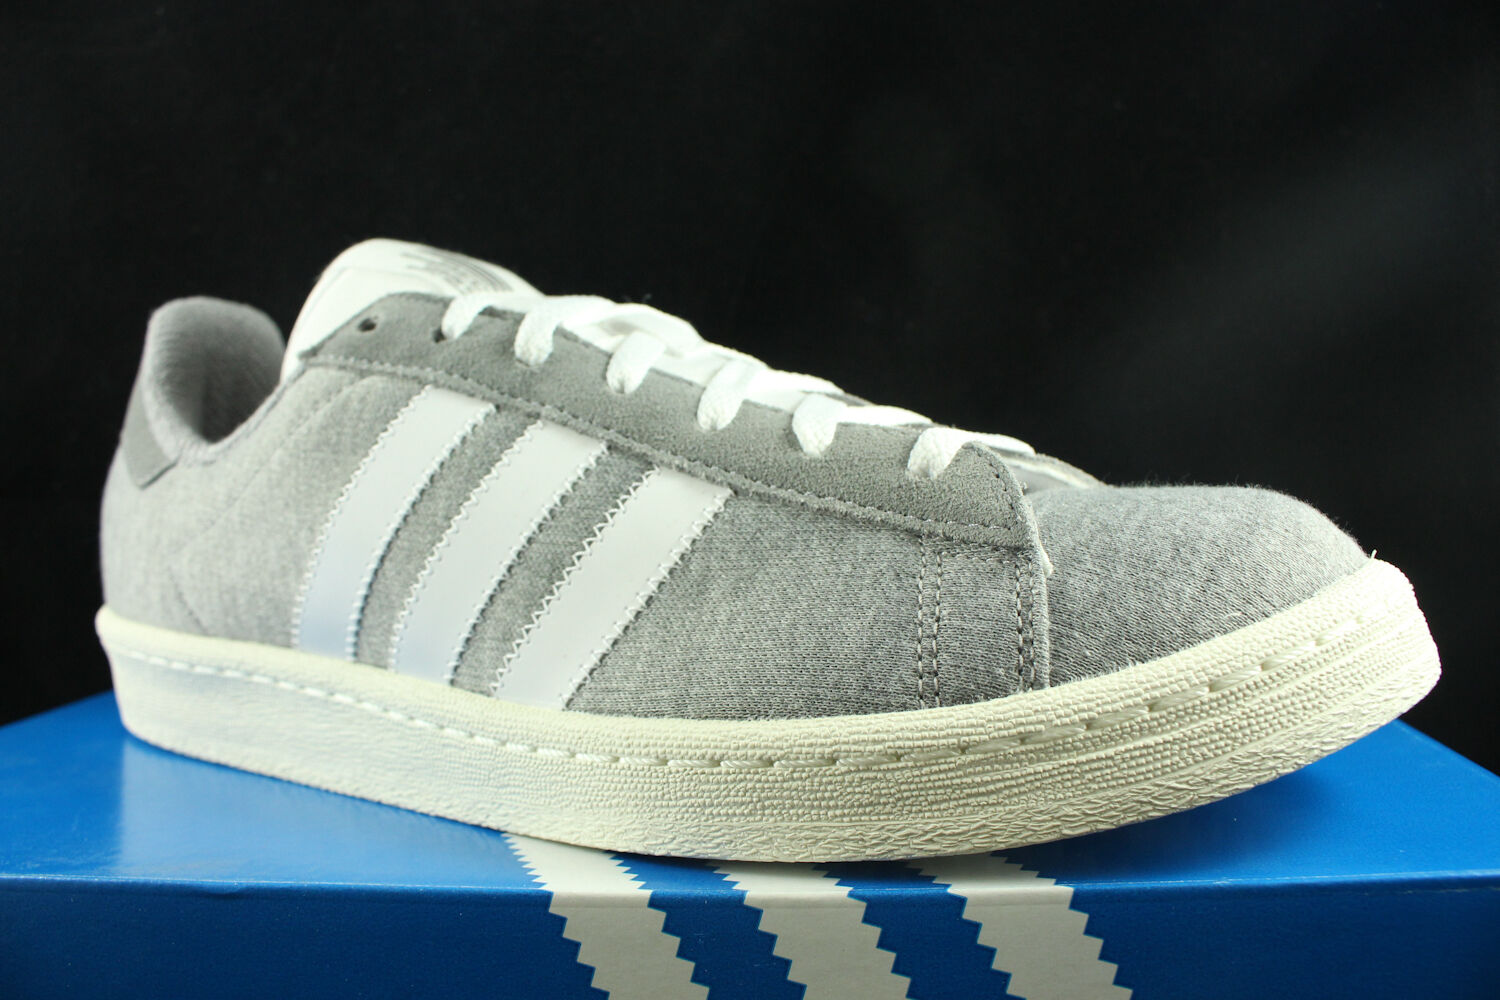 Adidas campus 80's bw bedwin bedwin bedwin and the heart breakers grey white s75675 sz 8.5 cfc147